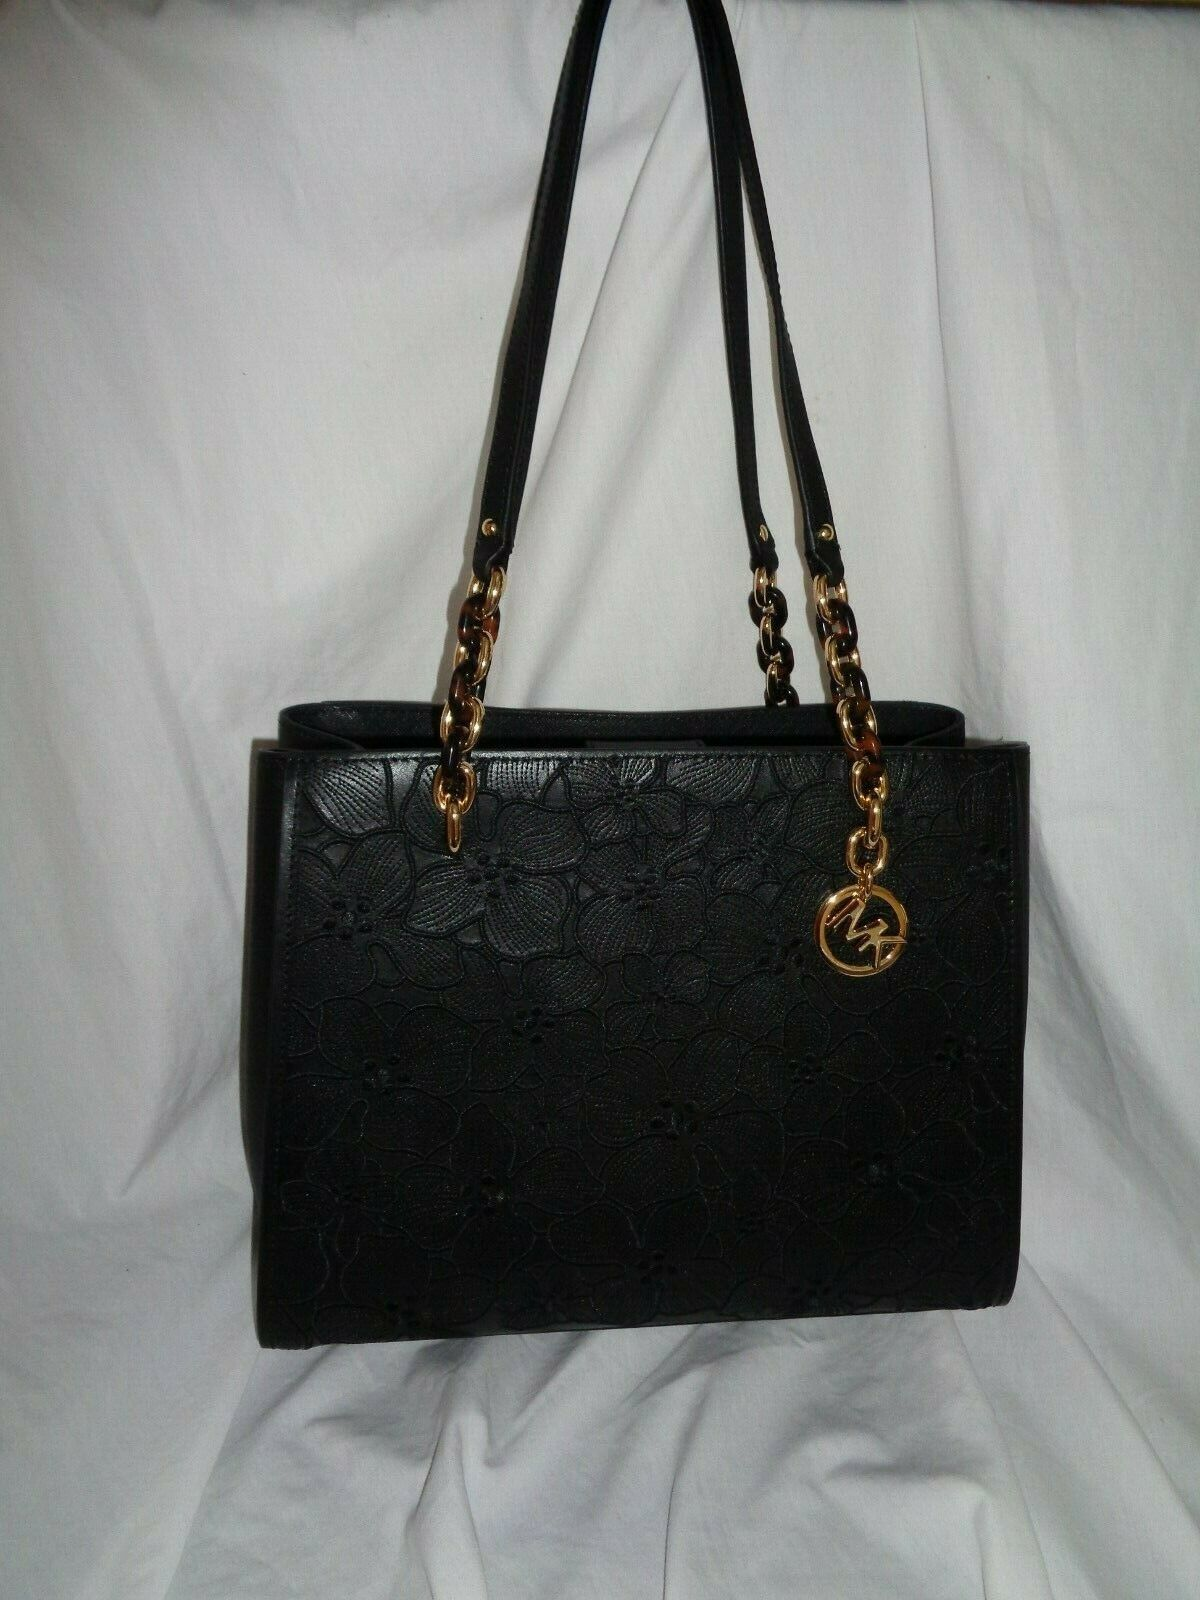 b502d8d05a80 57. 57. Previous. MICHAEL KORS SOFIA LARGE TOTE SHOPPER HANDBAG EMBROIDERY  FLORAL BLACK LEATHER. MICHAEL KORS SOFIA ...